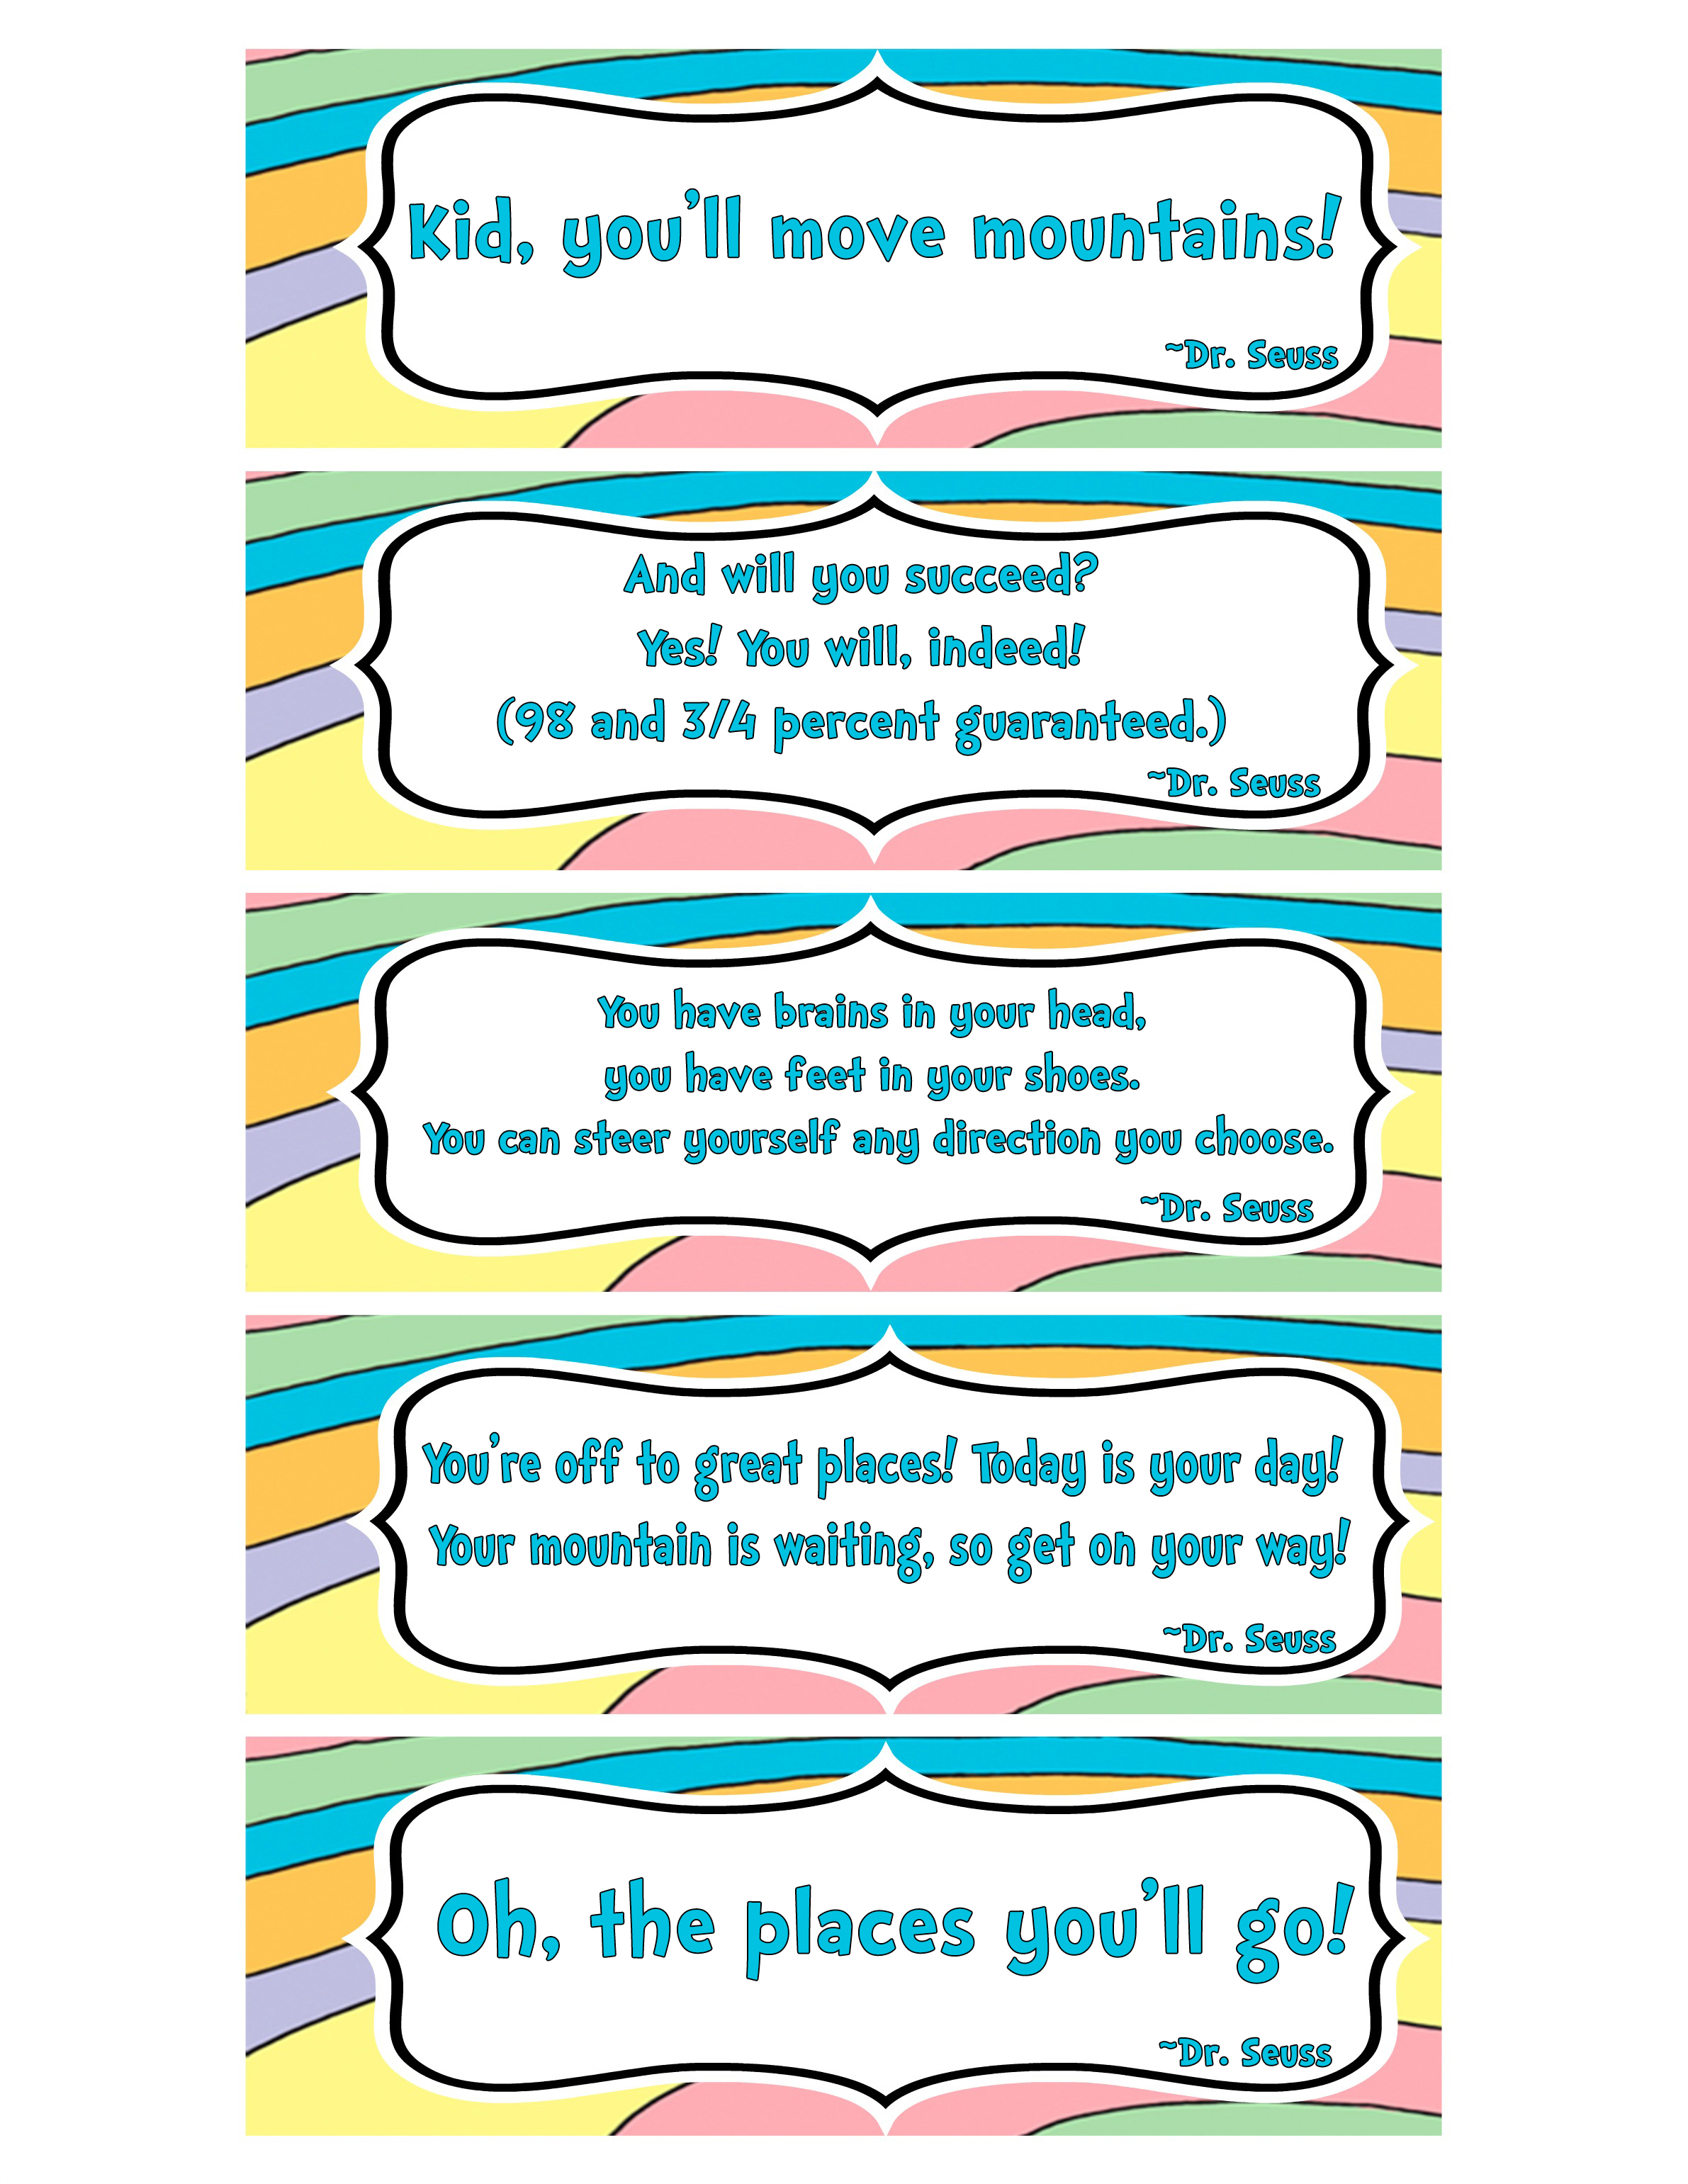 photo regarding Dr Seuss Printable Bookmarks named Printable Bookmarks with Famed Quotations towards \